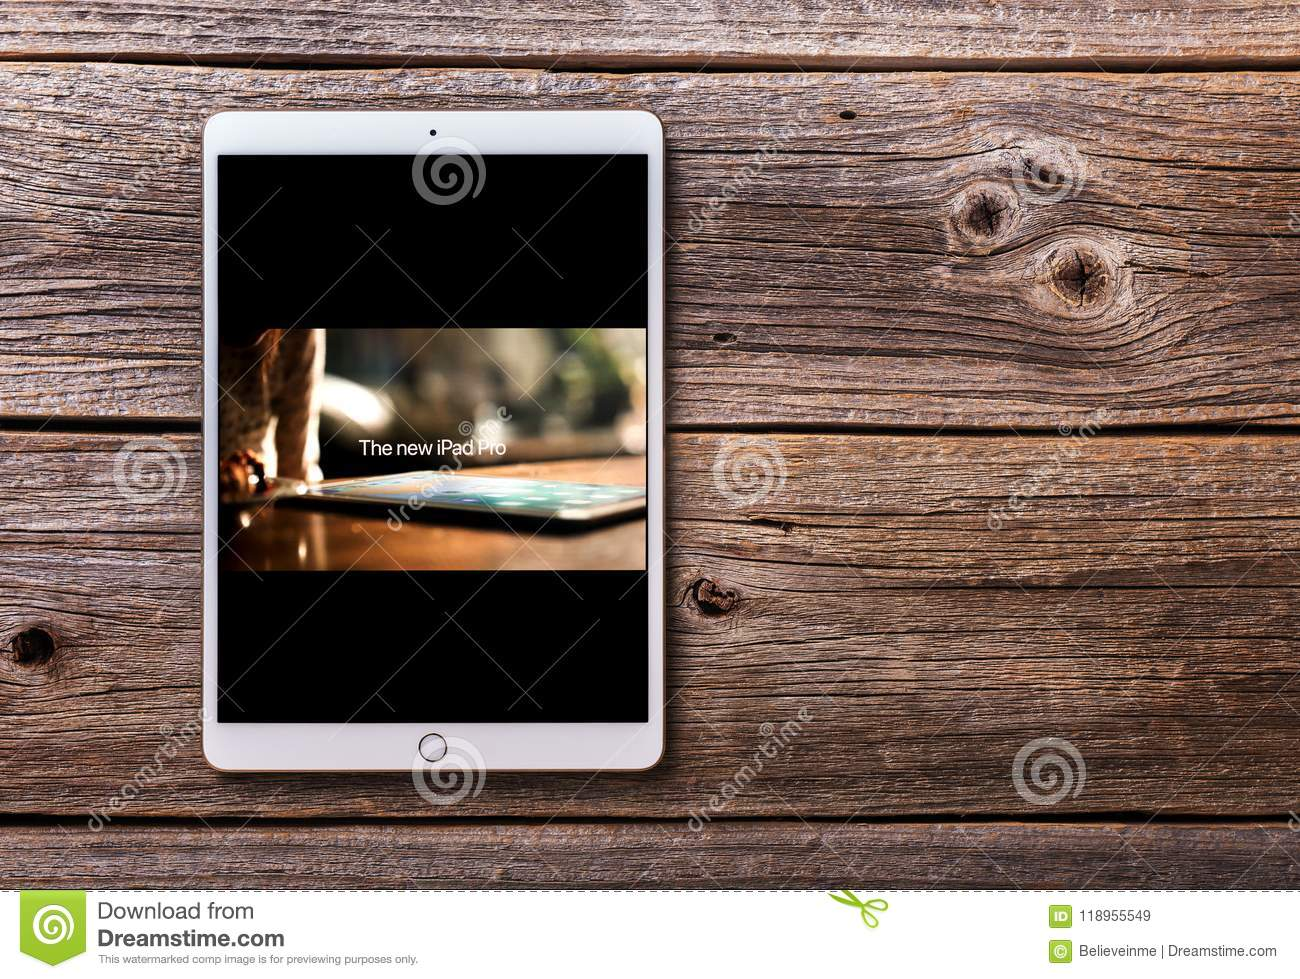 Ipad Pro With An Official Video From Apple Inc  On The